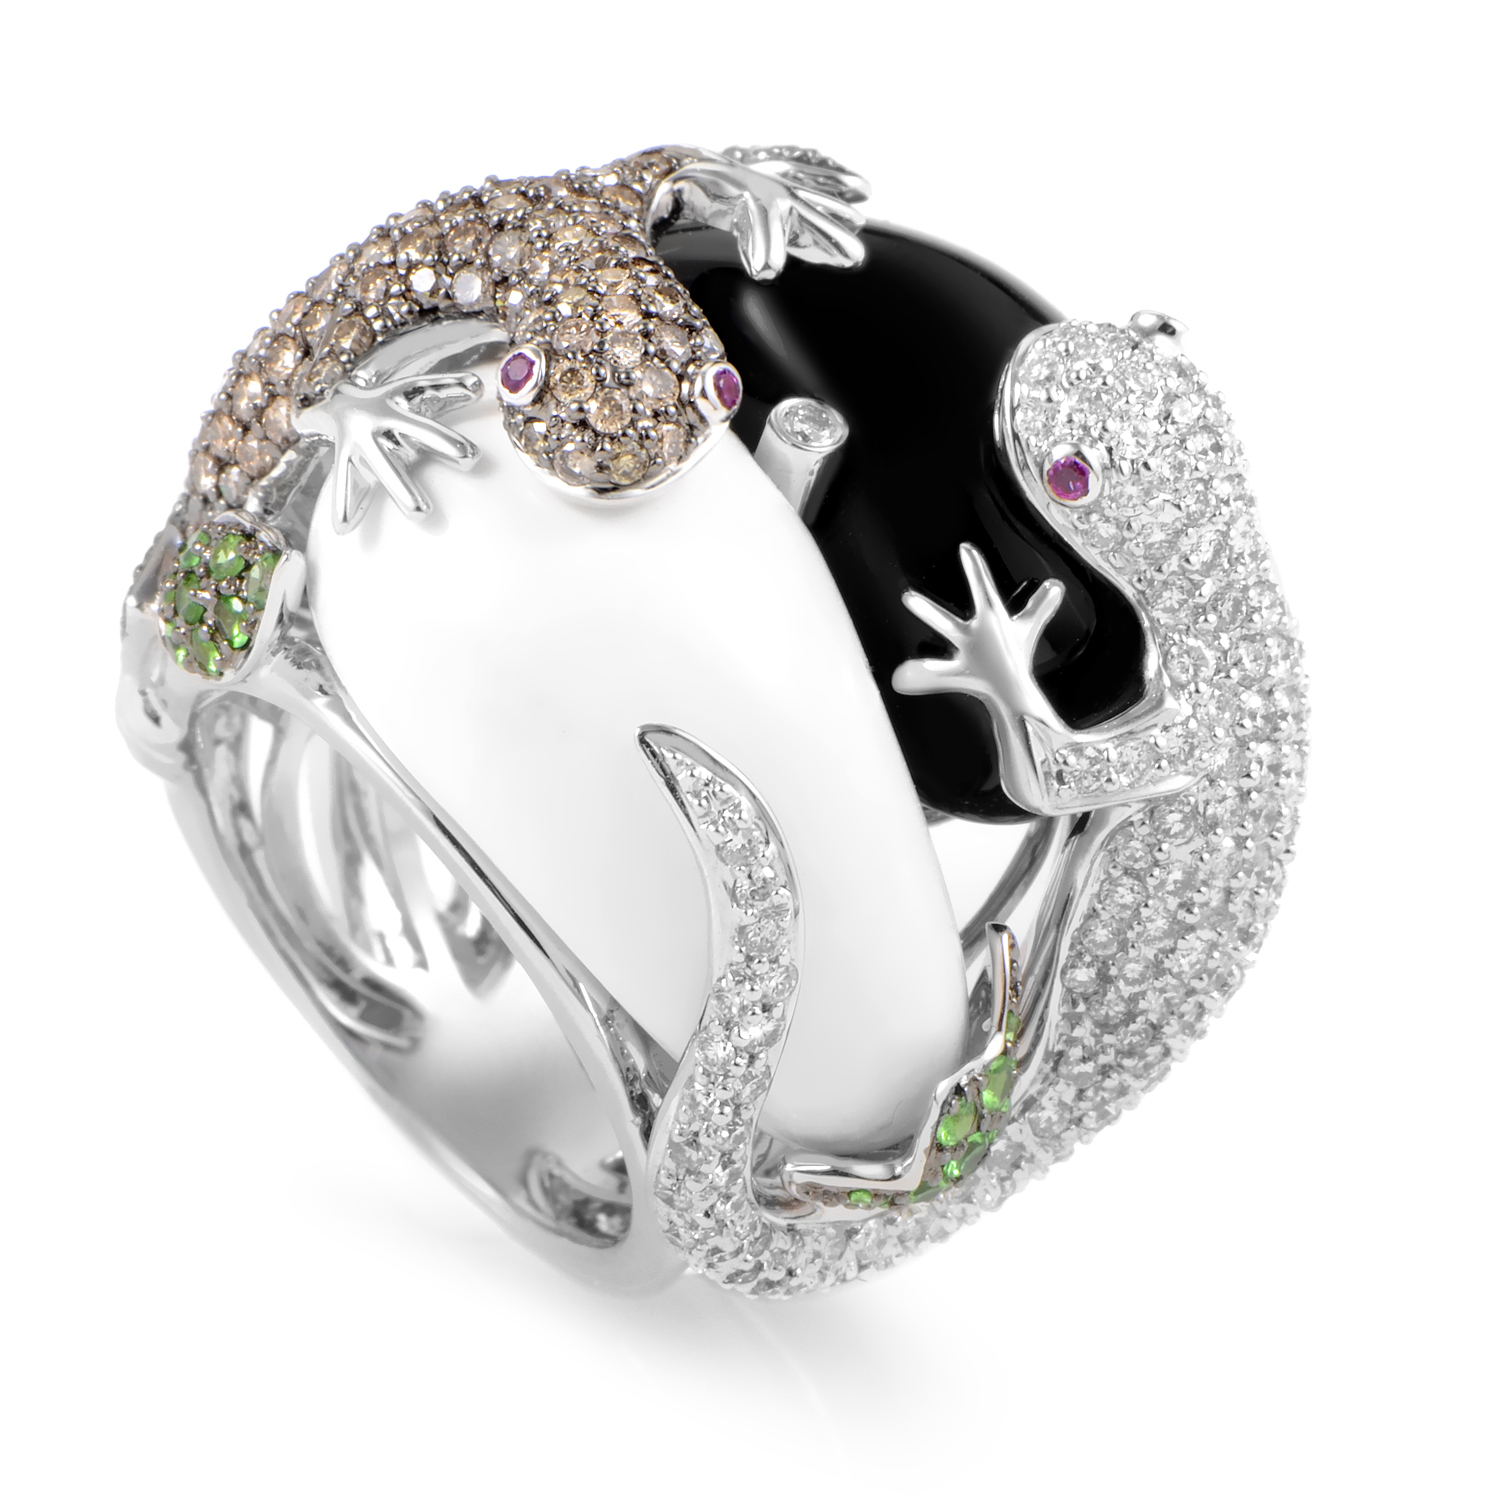 Women's 18K White Gold Diamond Lizard & Gemstone Ring KO1548BZTVOX